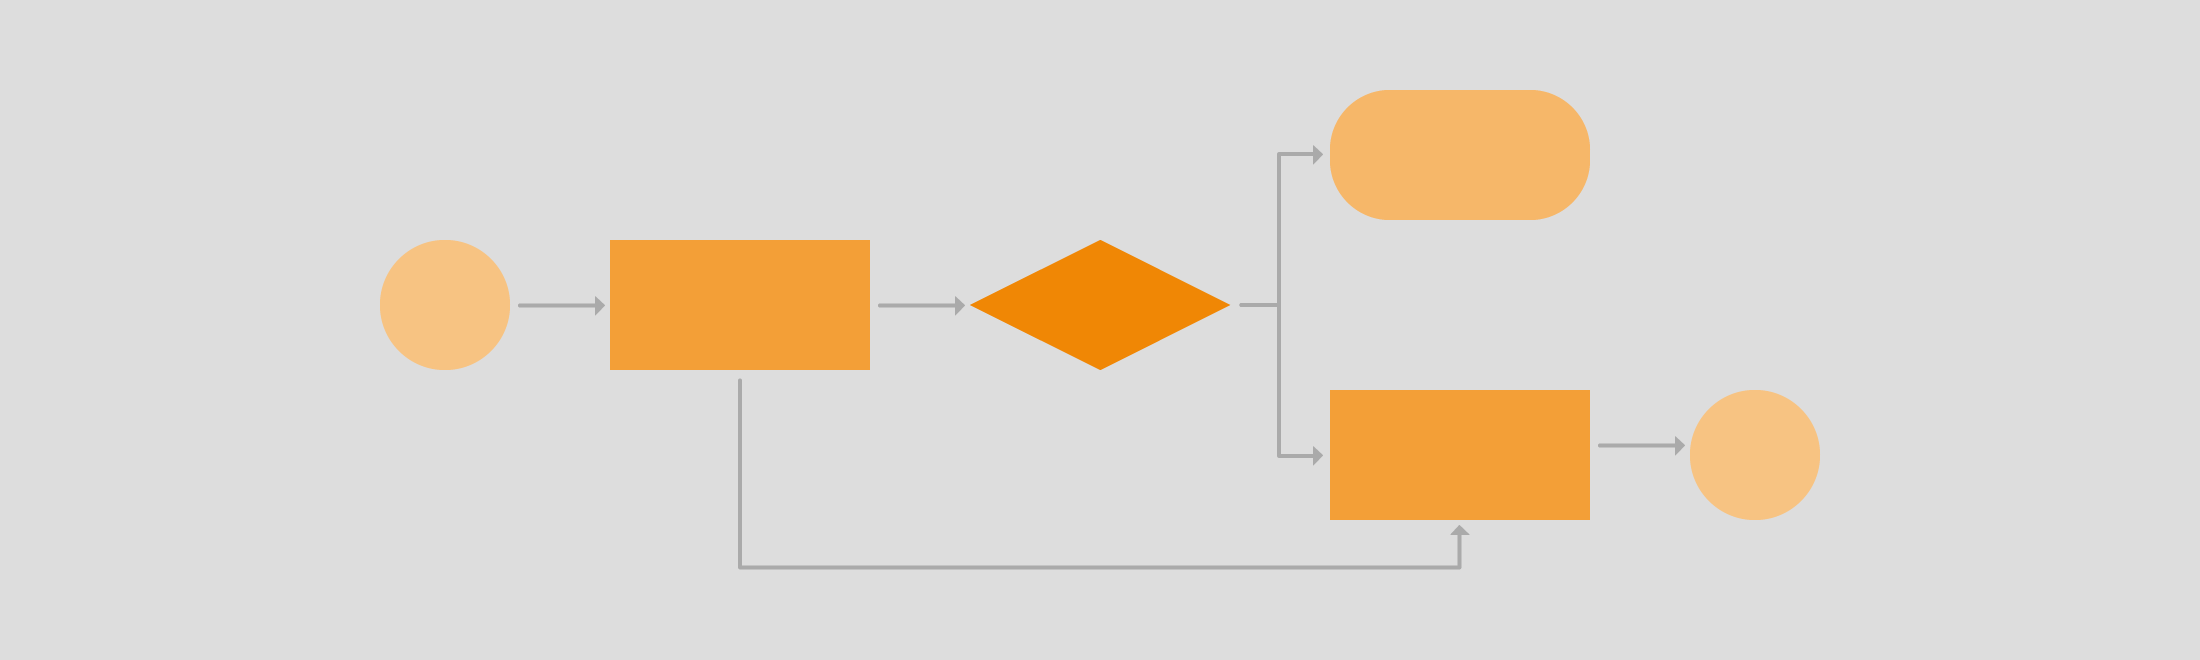 Easily create flowcharts in draw.io